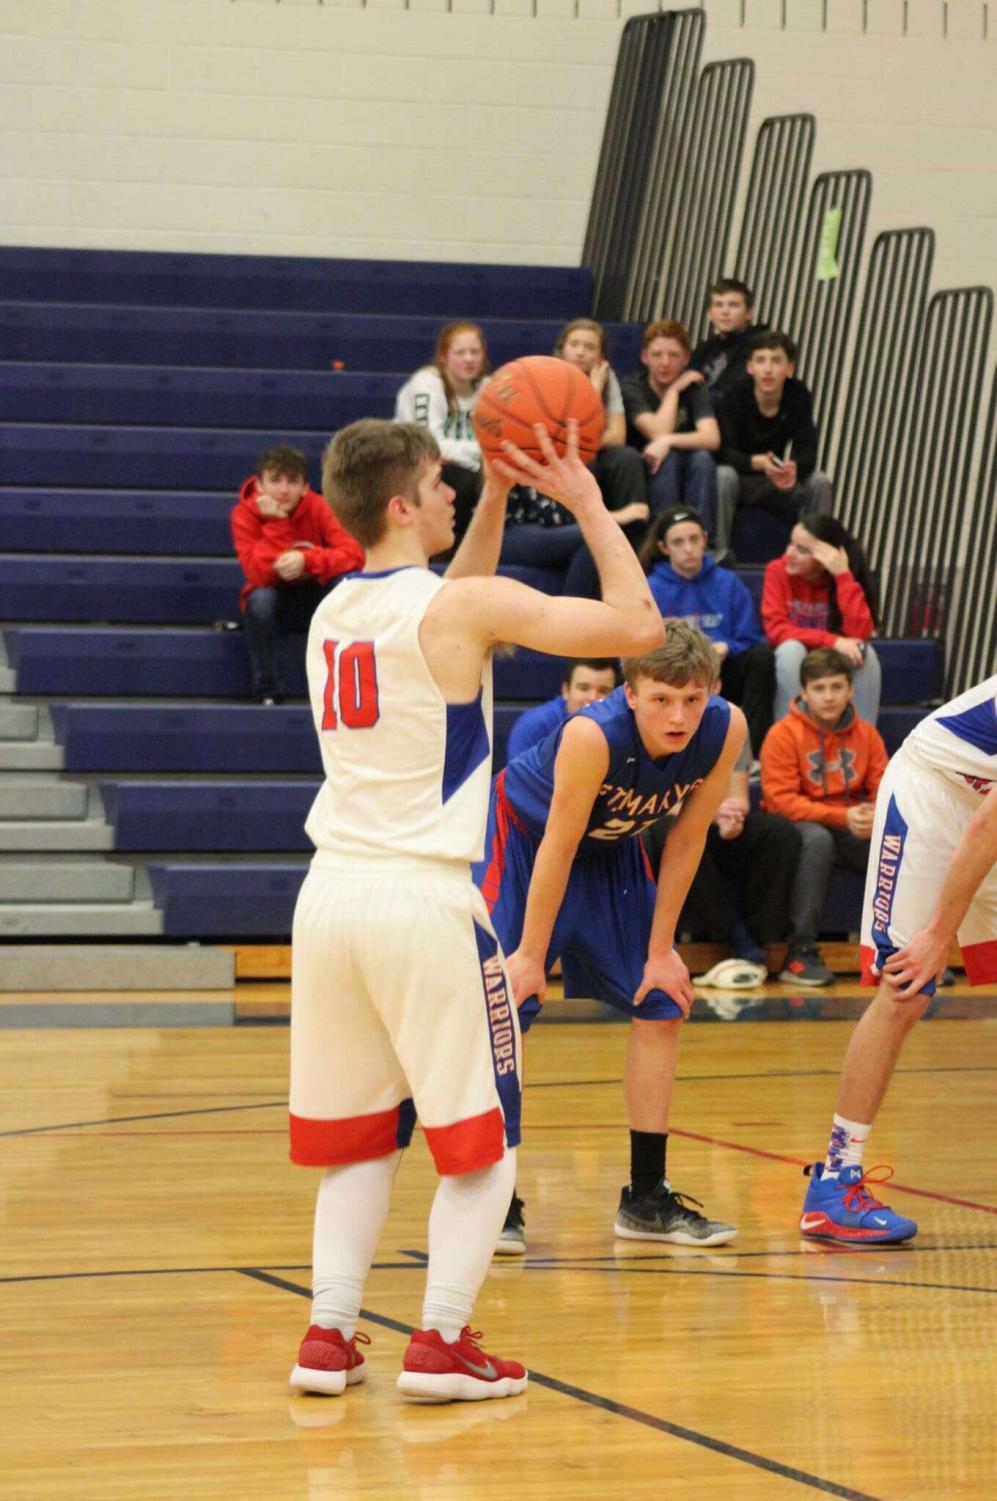 John Arnold shoots a free-throw against St. Mary's.